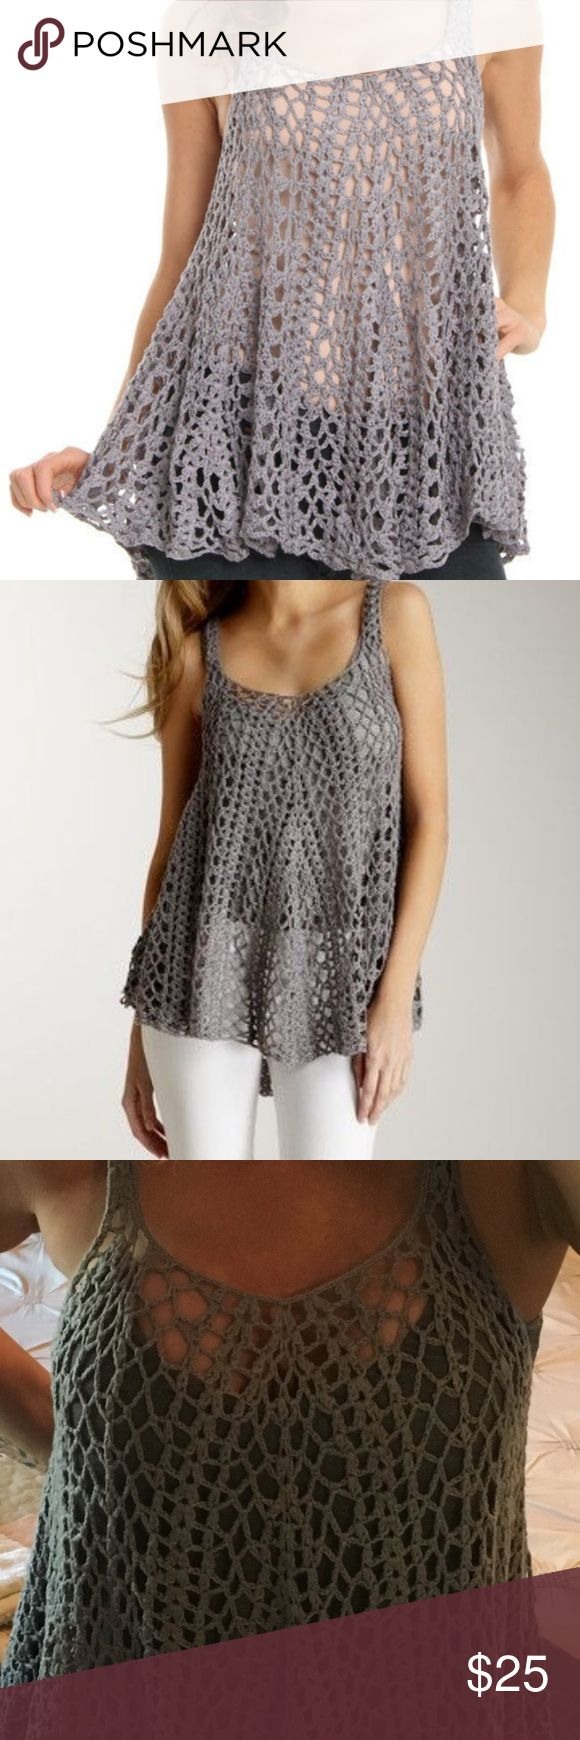 Mystree crochet cami Mystree dark gray crochet cami Mystree Tops Camisoles